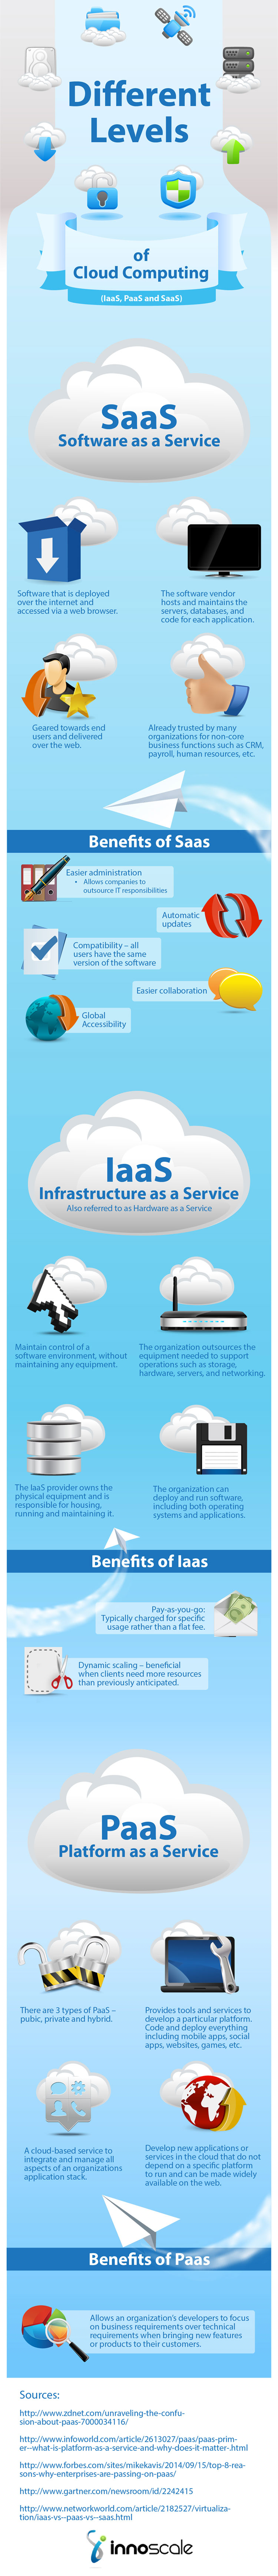 Different Levels of Cloud Computing Infographic